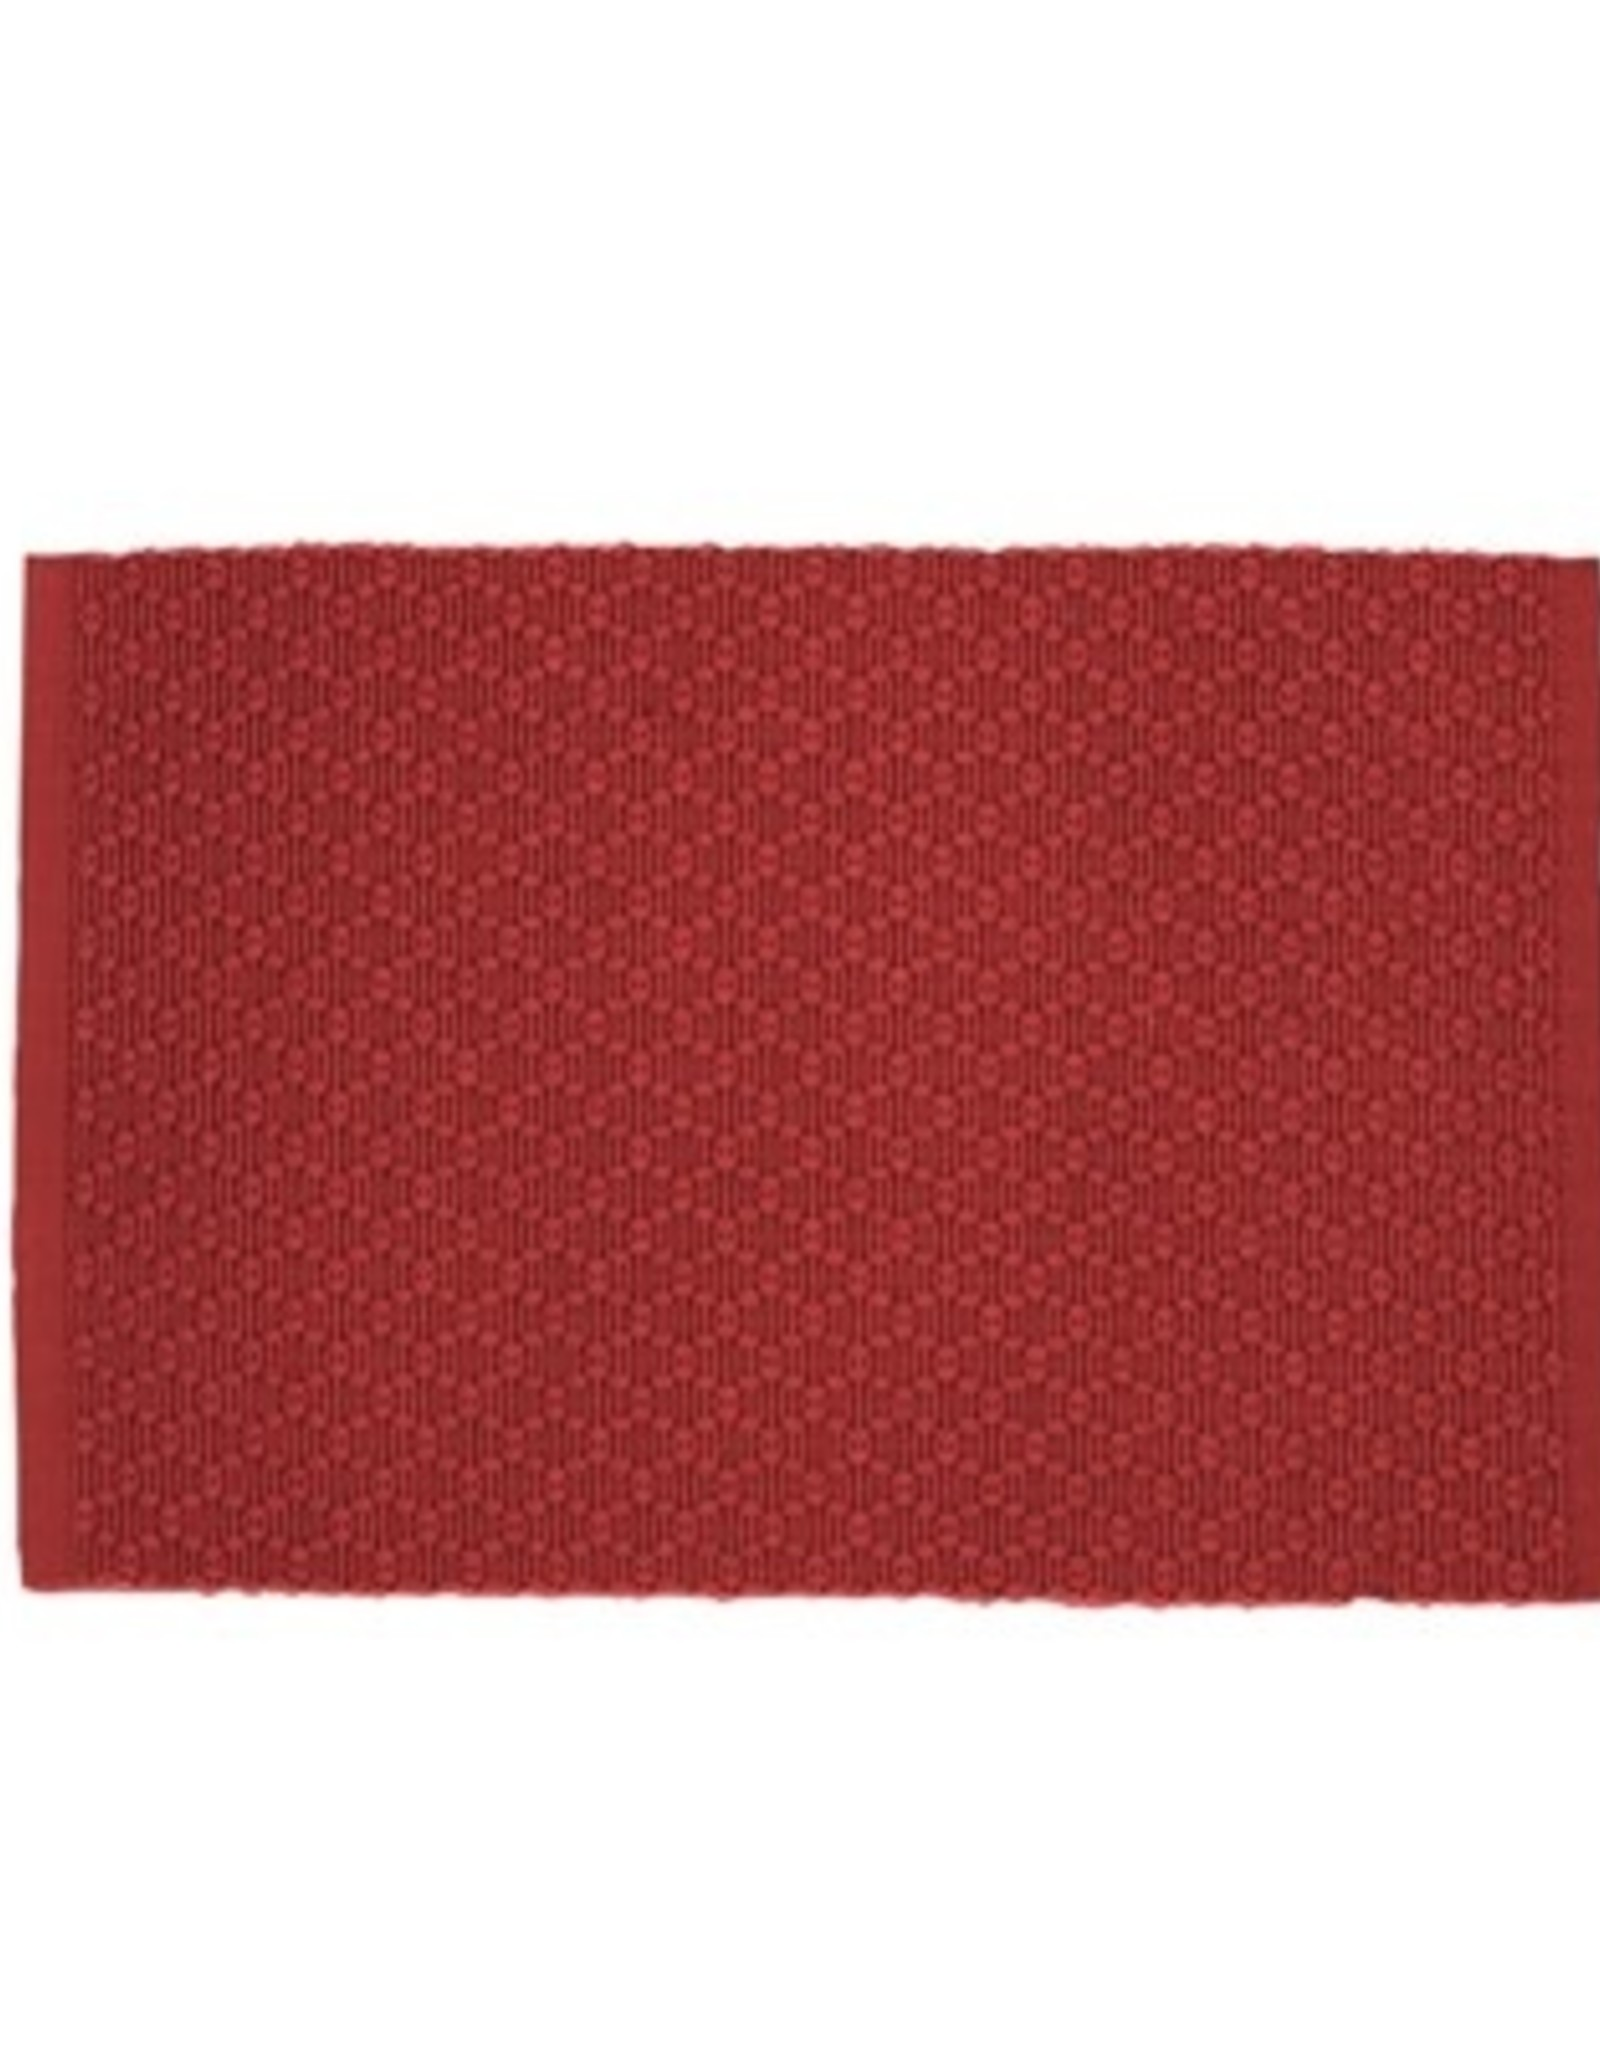 Placemat Harman Diamond Ribbed Woven Red